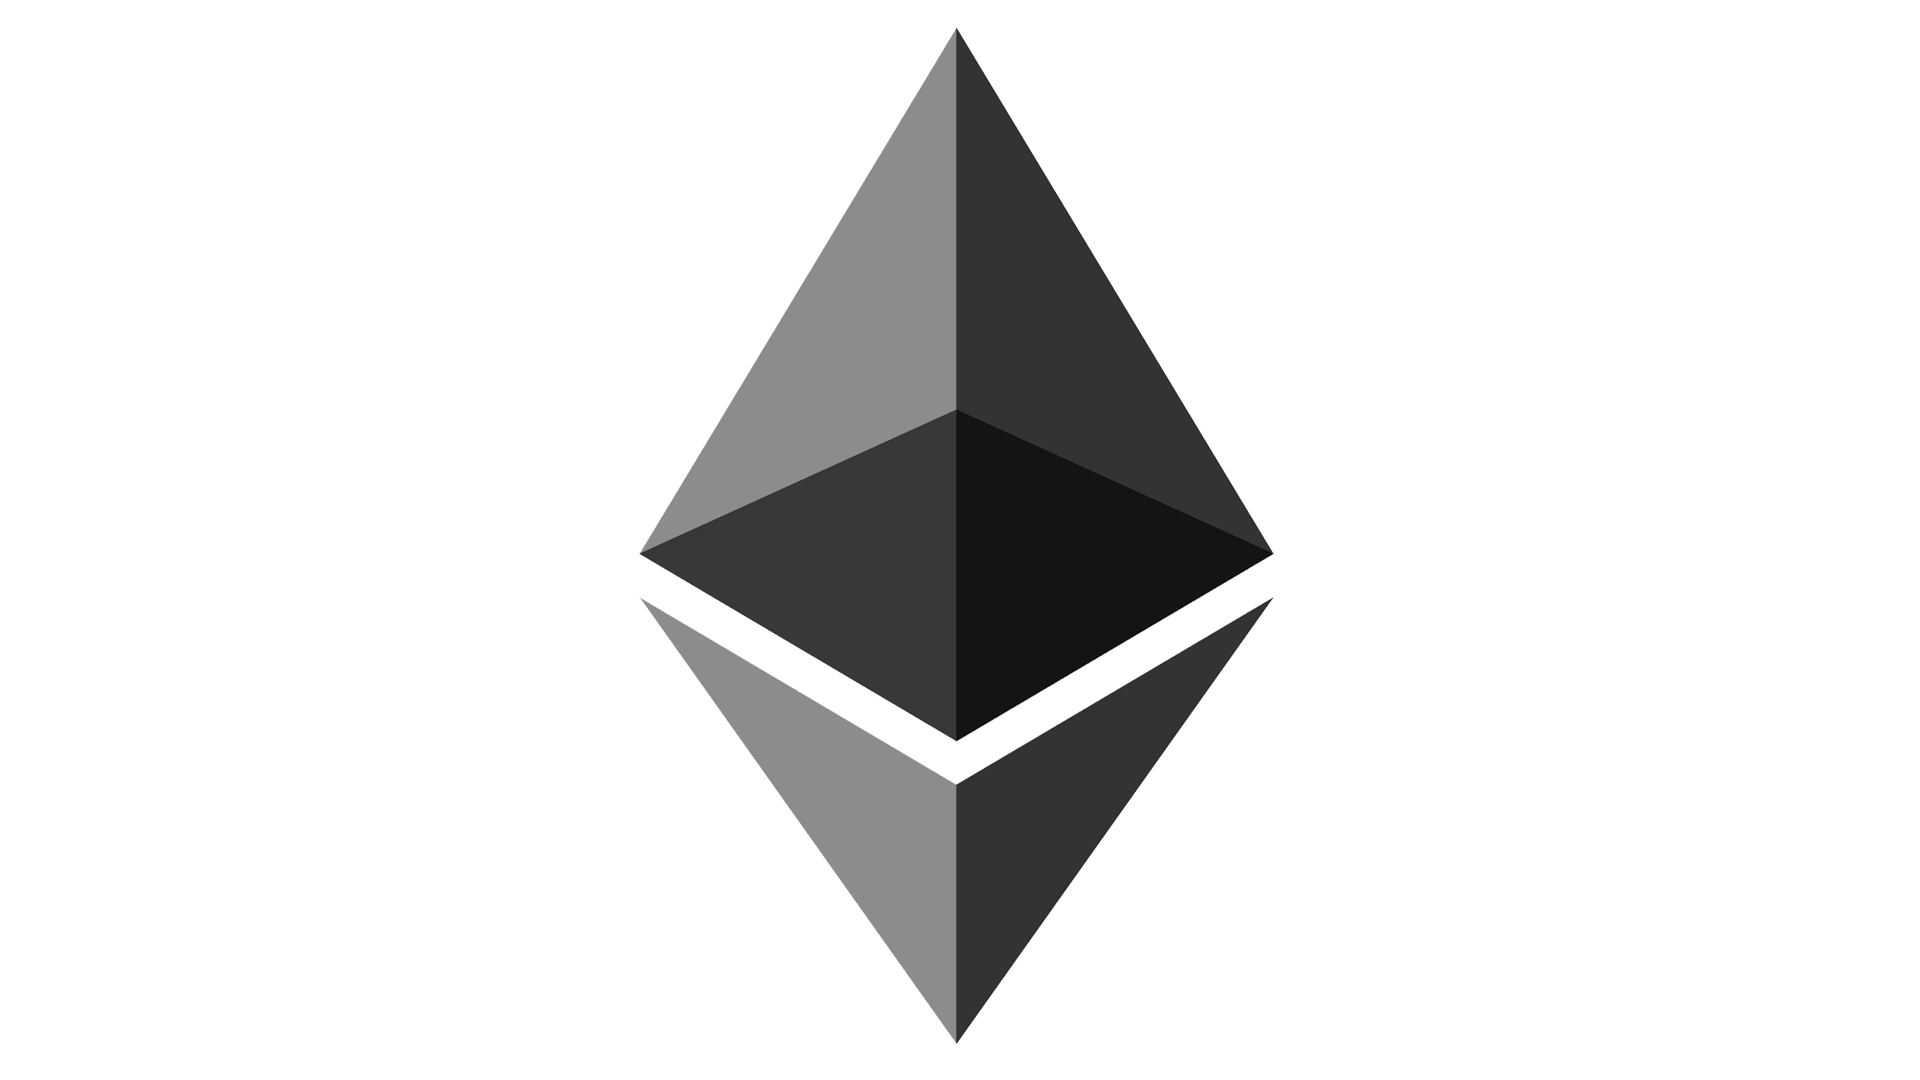 Ethereum logo png. Symbol meaning history and